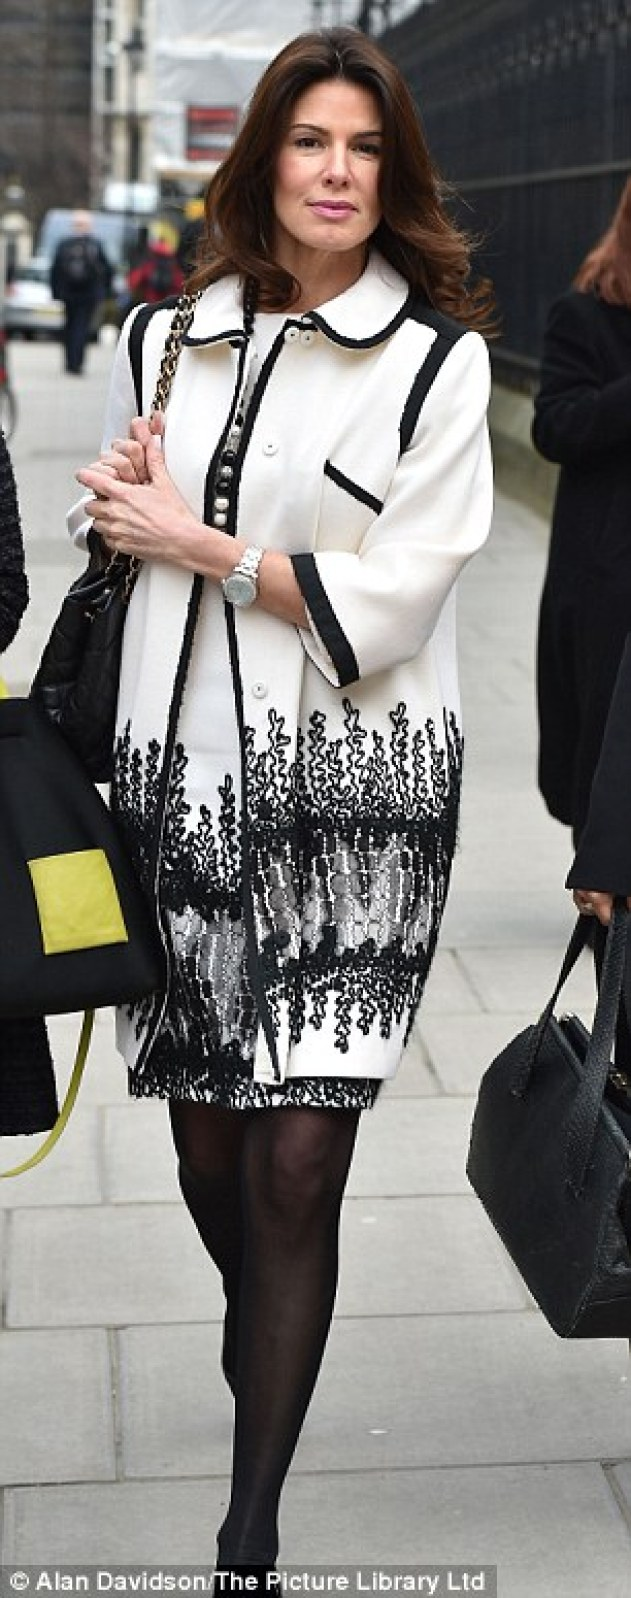 Christina Estrada pictured outside the High Court today